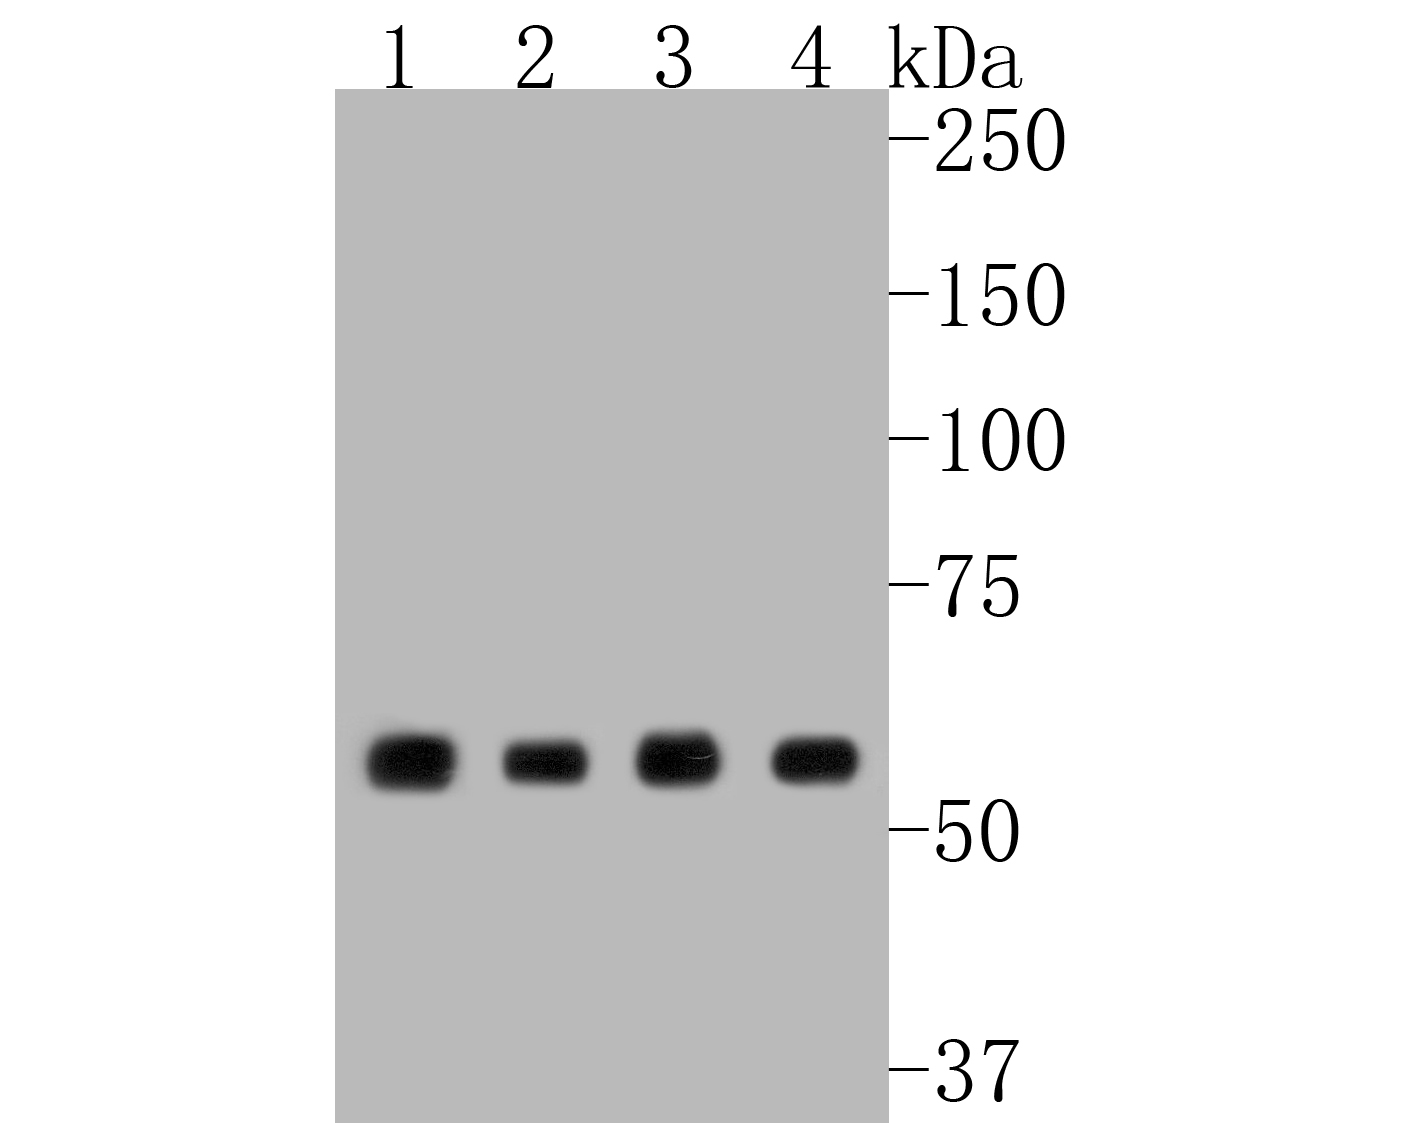 Western blot analysis of Hsp60 on different lysates. Proteins were transferred to a PVDF membrane and blocked with 5% BSA in PBS for 1 hour at room temperature. The primary antibody (ET1609-45, 1/500) was used in 5% BSA at room temperature for 2 hours. Goat Anti-Rabbit IgG - HRP Secondary Antibody (HA1001) at 1:5,000 dilution was used for 1 hour at room temperature.<br /> Positive control: <br /> Lane 1: Hela cell lysate<br /> Lane 2: MCF-7 cell lysate<br /> Lane 3: SW480 cell lysate<br /> Lane 4: PANC-1 cell lysate